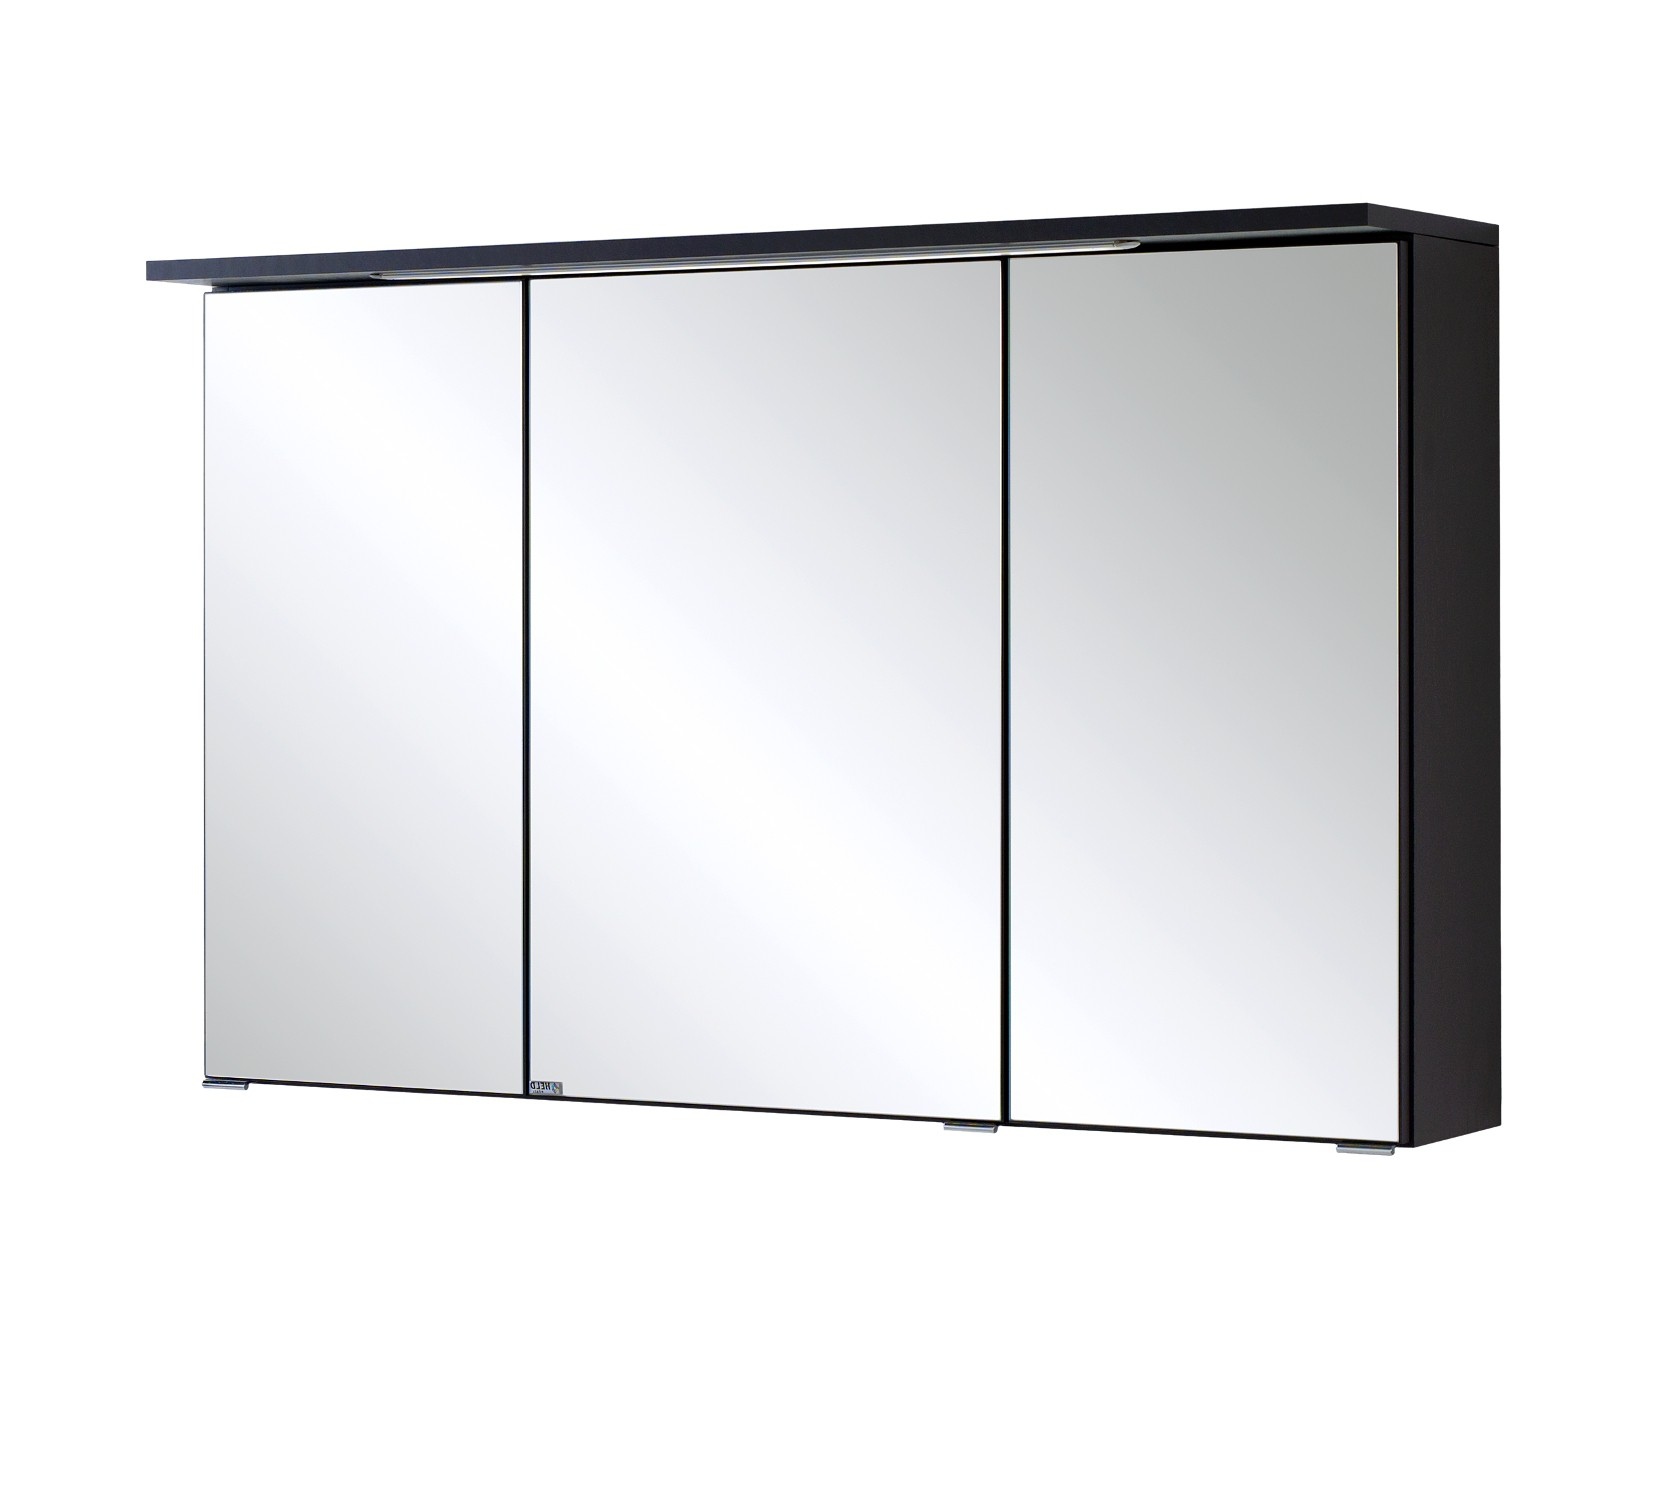 bad spiegelschrank bologna 3 t rig mit led lichtleiste 100 cm breit graphitgrau bad bologna. Black Bedroom Furniture Sets. Home Design Ideas